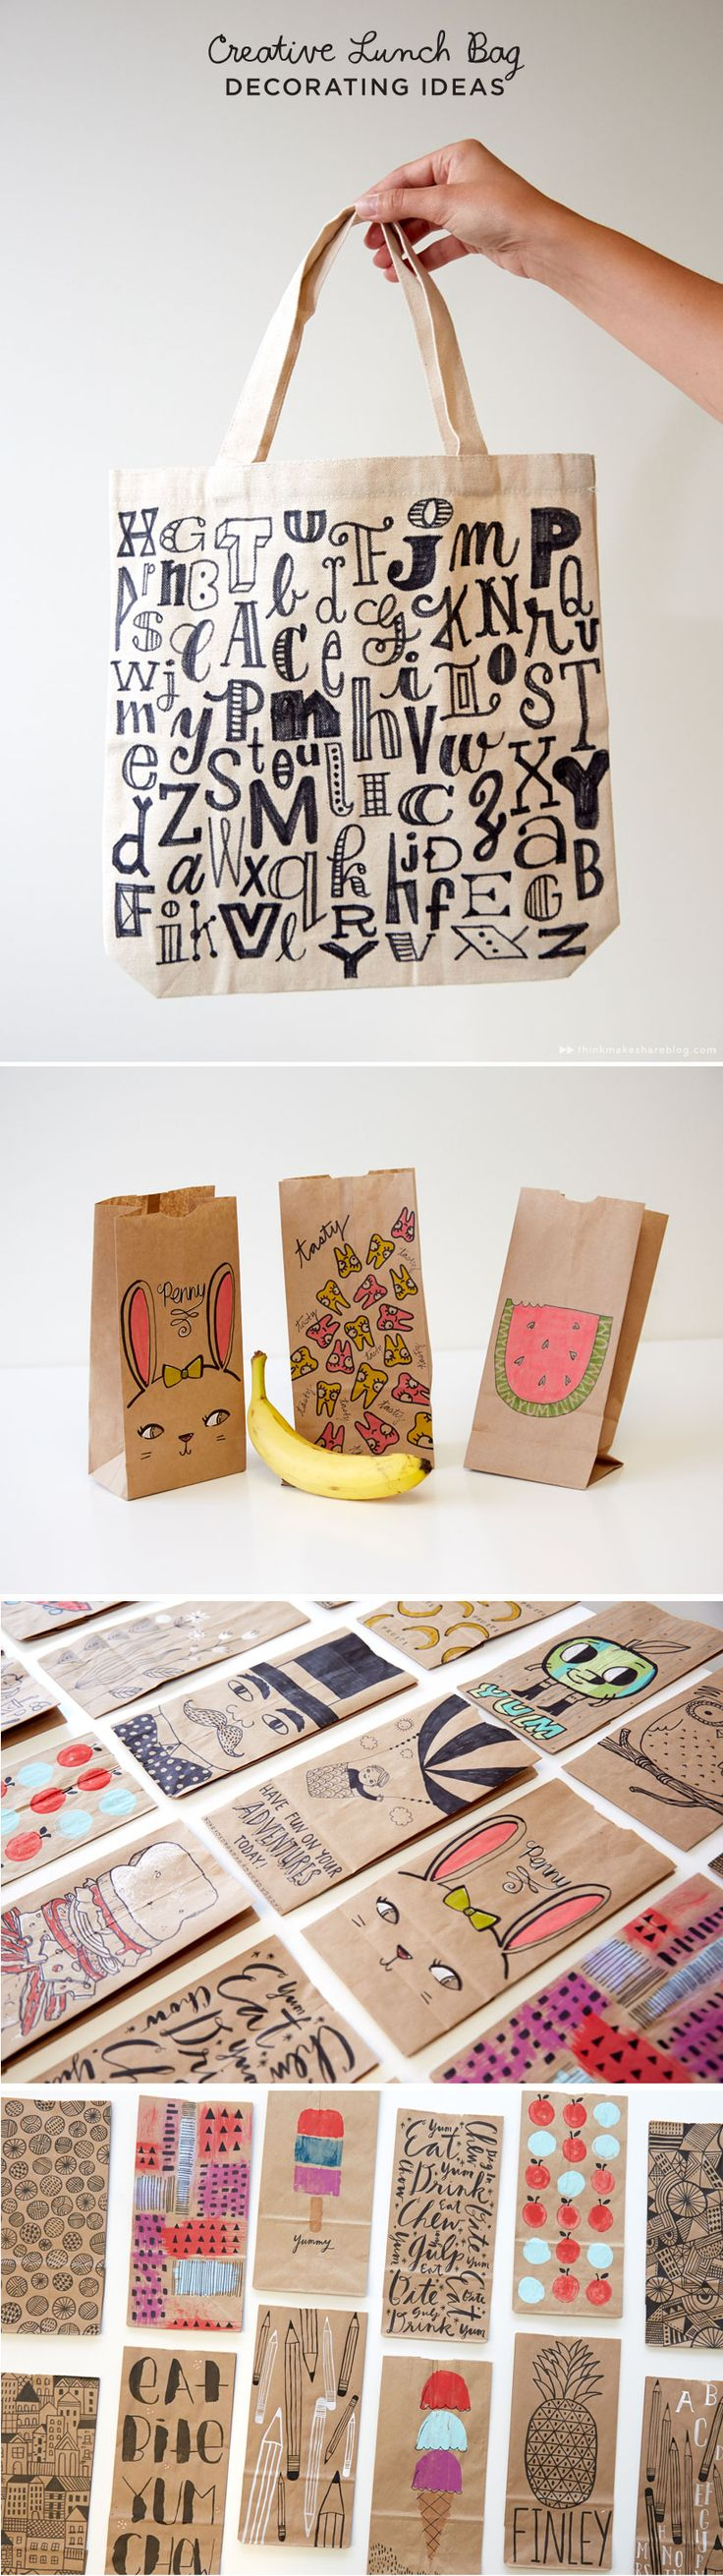 Creative Lunch Bag Decorating Ideas with Hallmark artists | thinkmakeshareblog.com